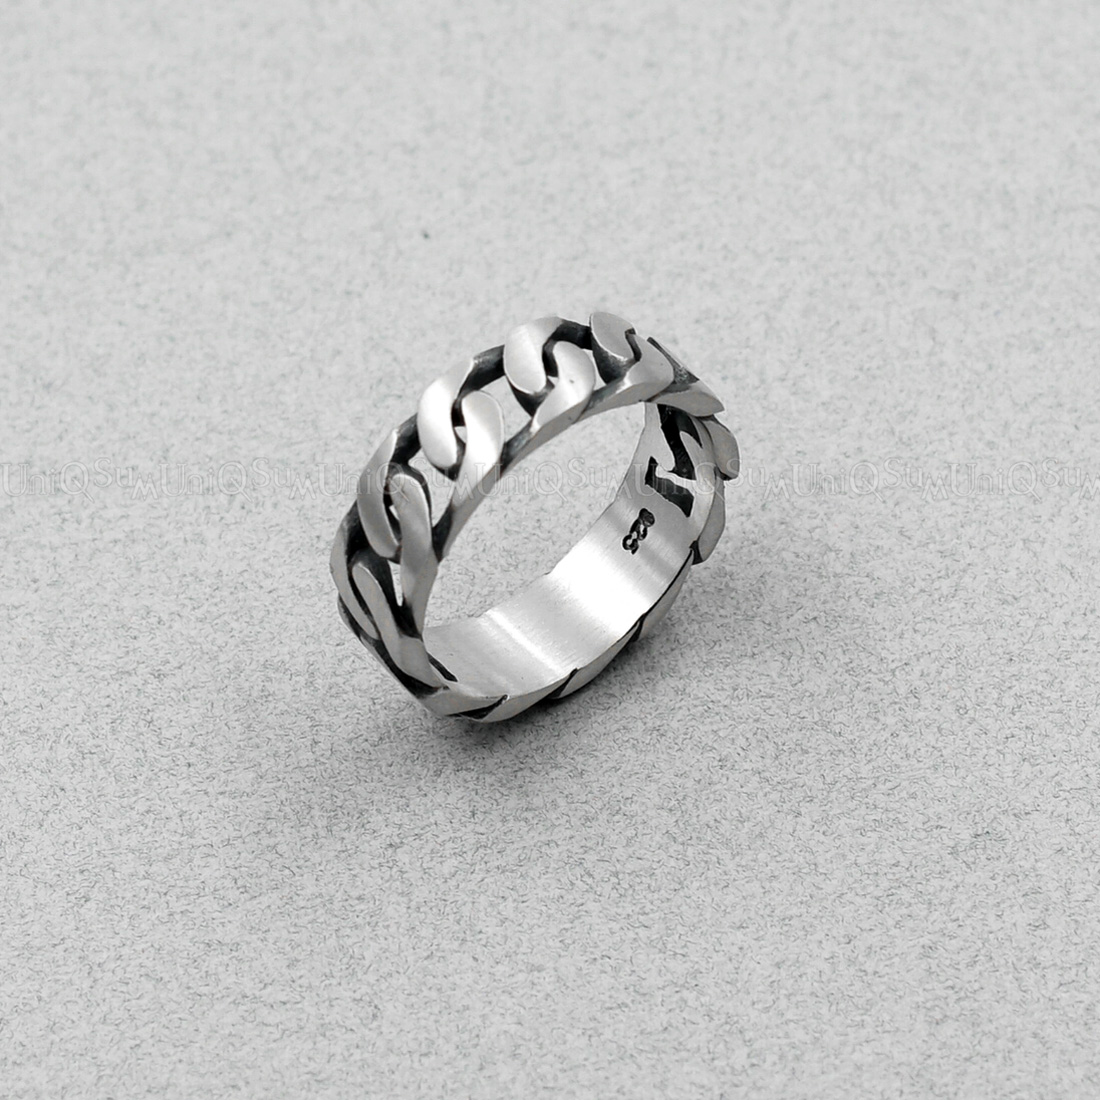 Antique Chain 925 Sterling Silver Bar Ring